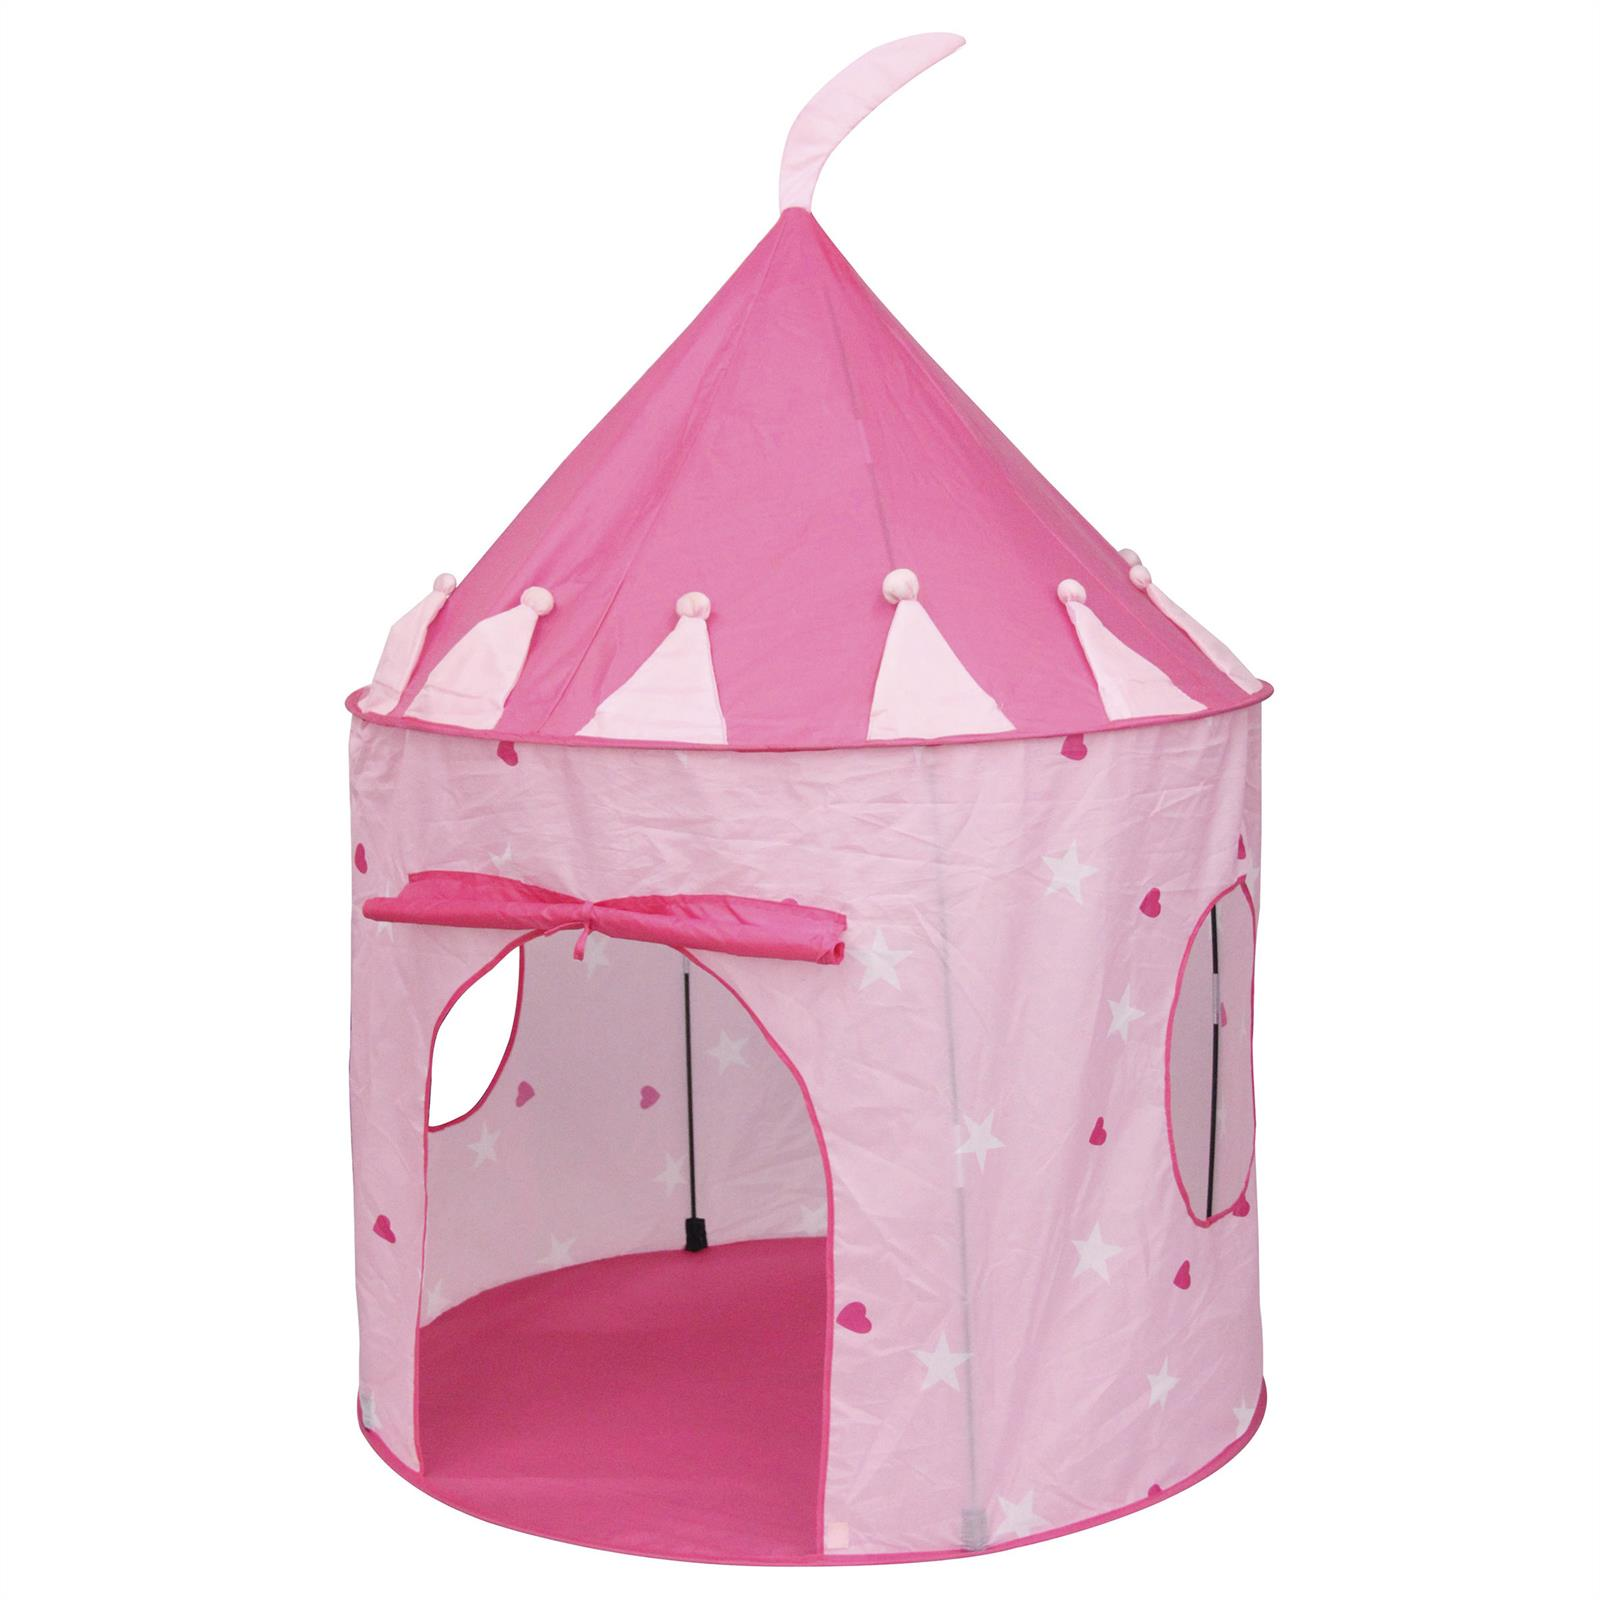 spielzelt rosa schloss prinzessin kinderzimmer spielhaus gartenzelt 100x135x100 ebay. Black Bedroom Furniture Sets. Home Design Ideas